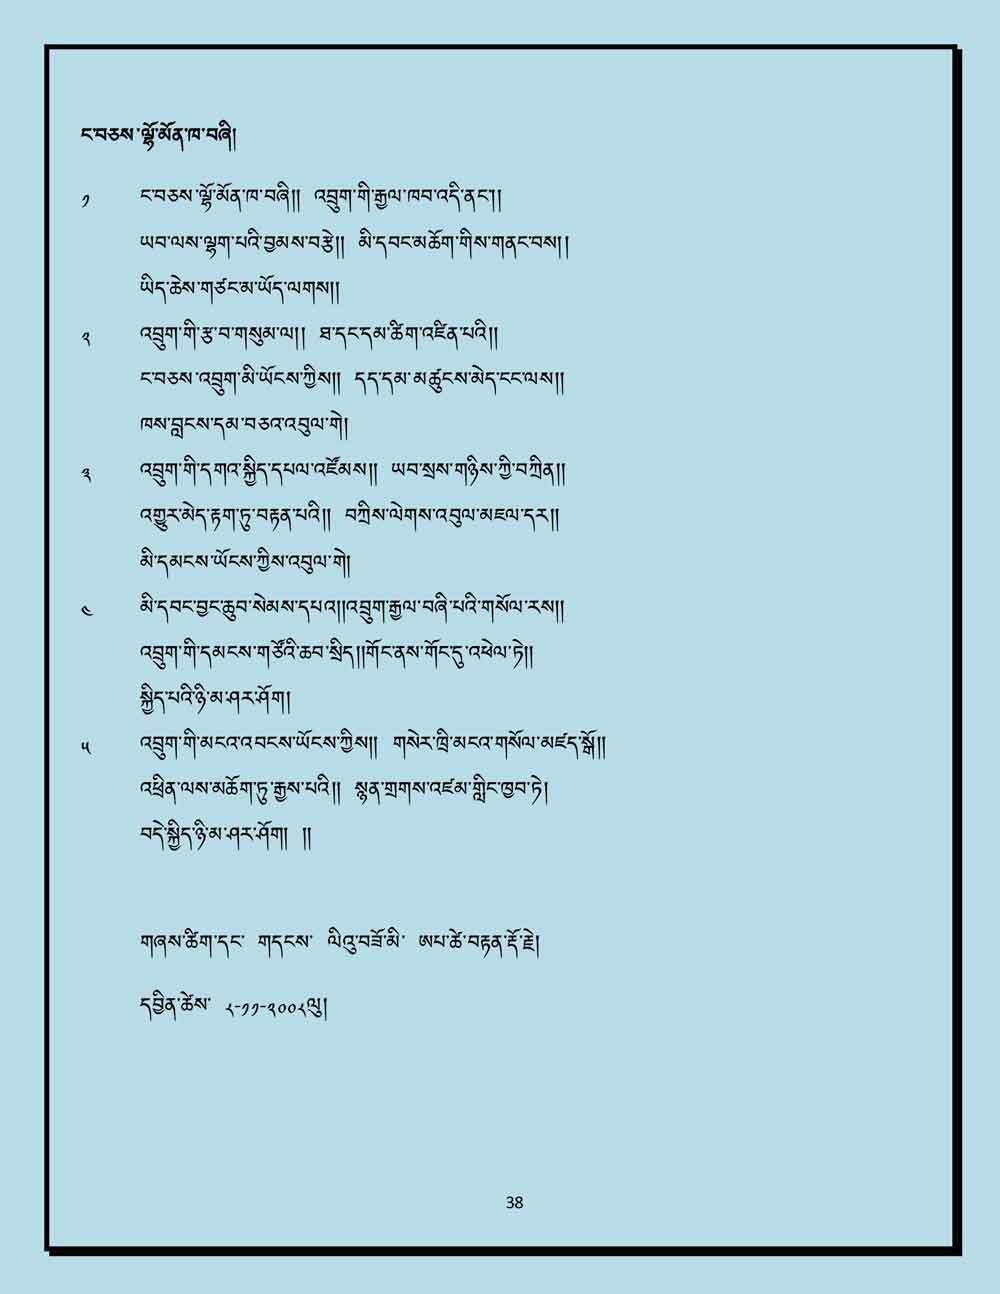 Ap-Tseten-Lyrics-38.jpg